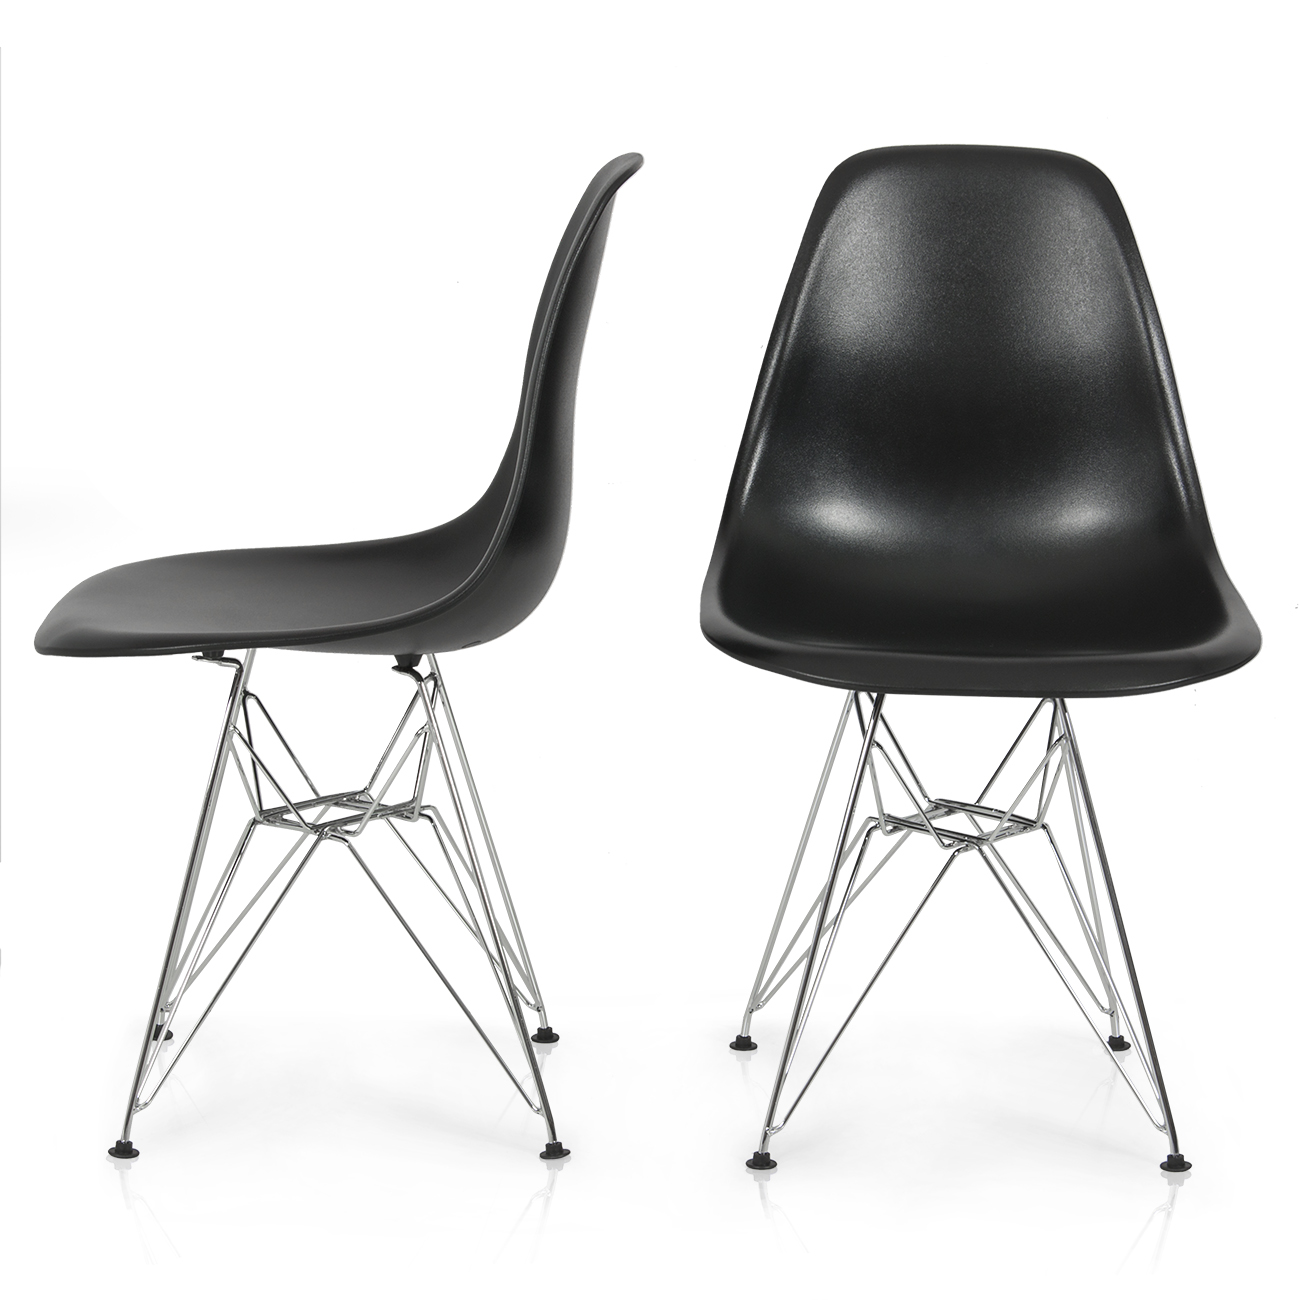 2x eames style dsw modern eiffel side chair molded abs. Black Bedroom Furniture Sets. Home Design Ideas